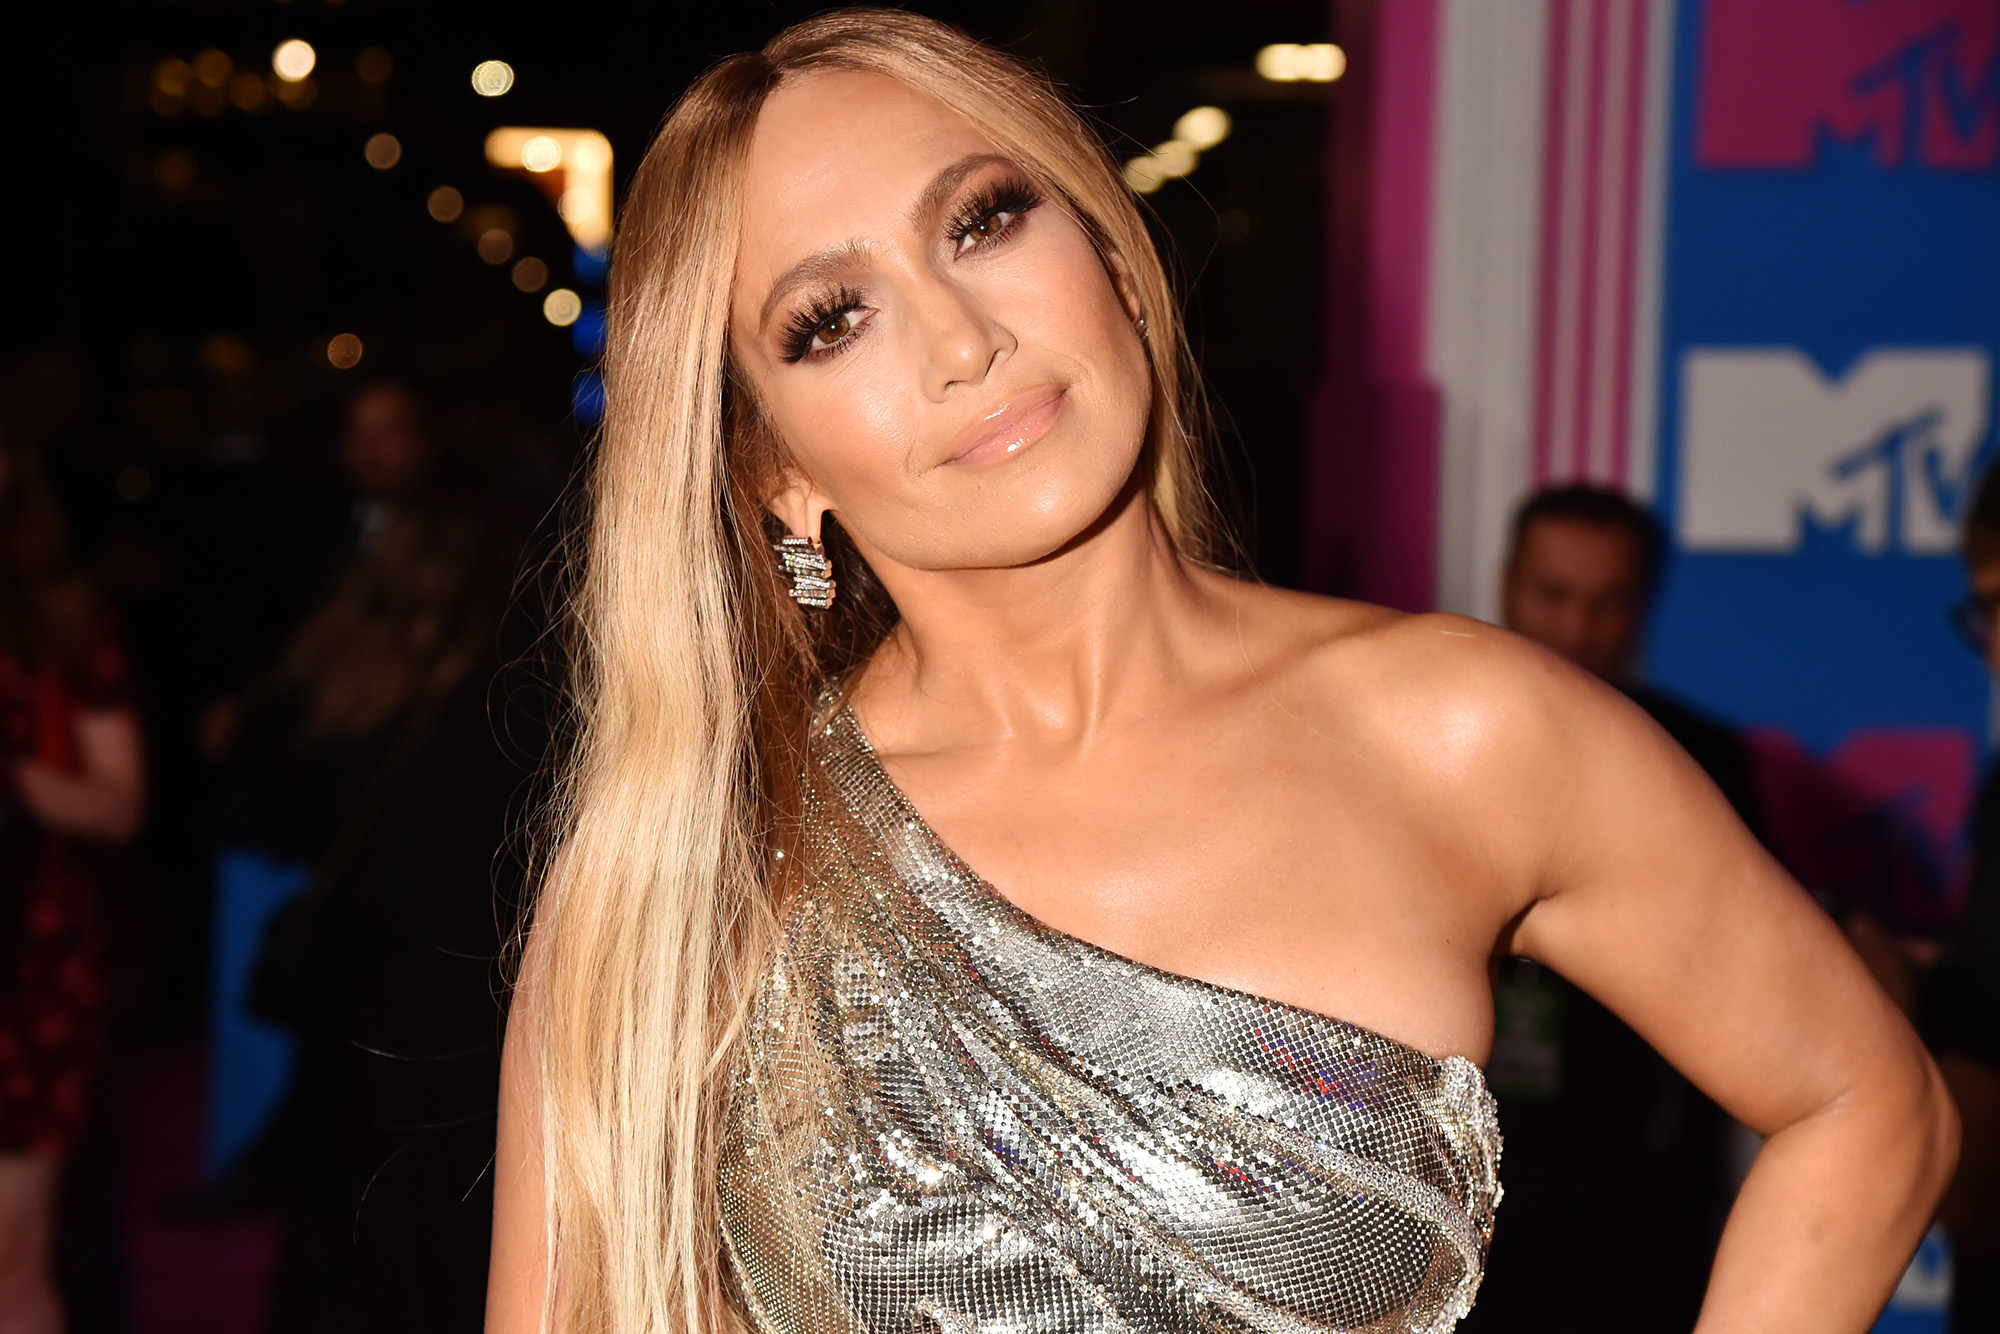 Jennifer Lopez poses half-naked in a sequined cape | Page Six